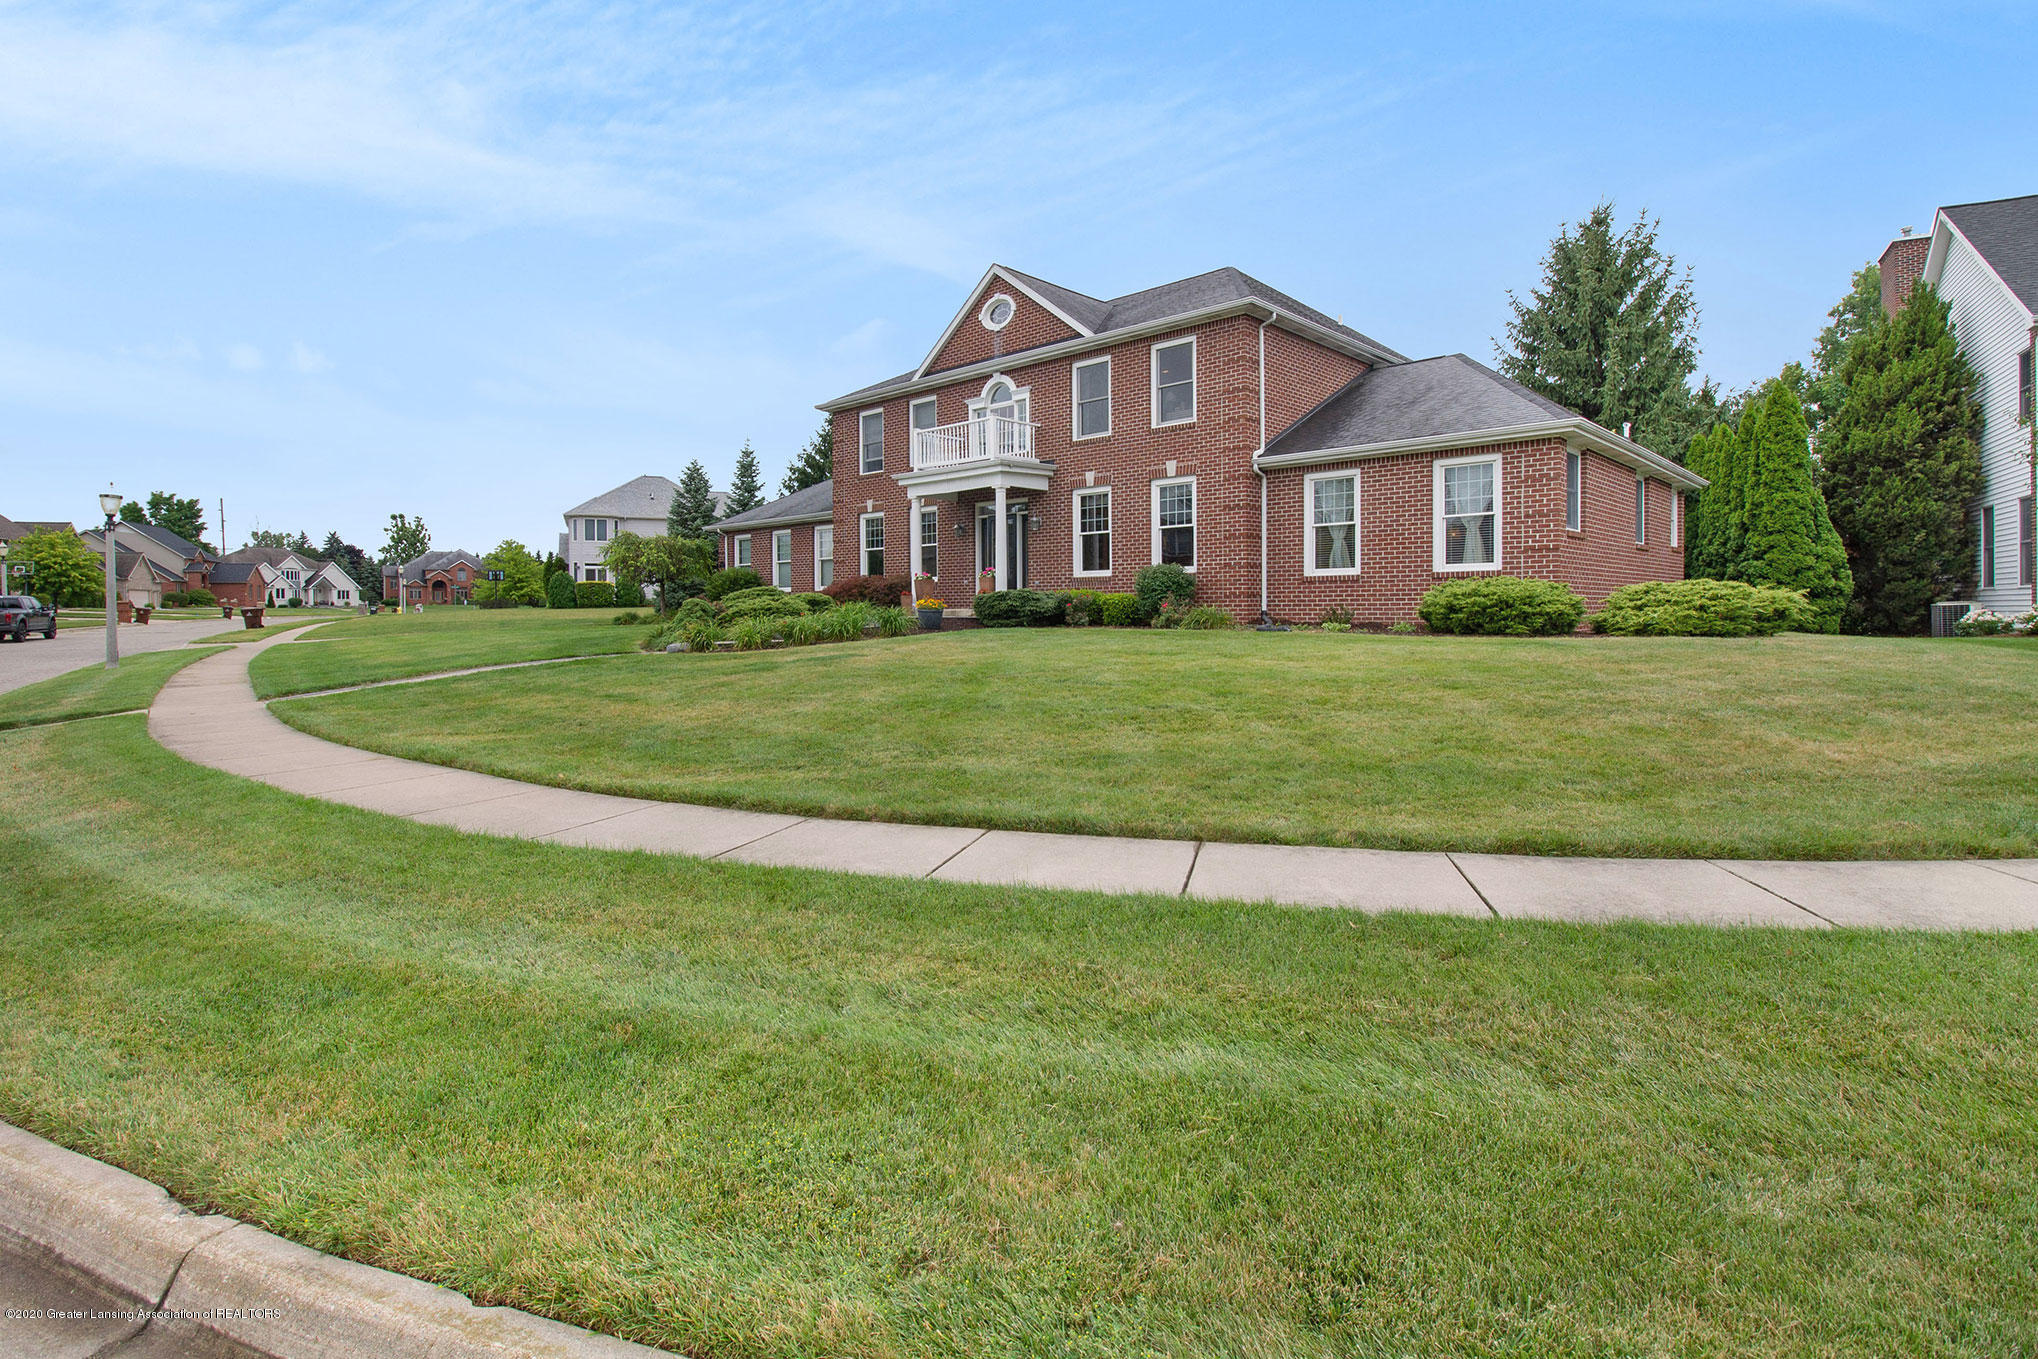 2223 Cawdor Ct - View from street - 3